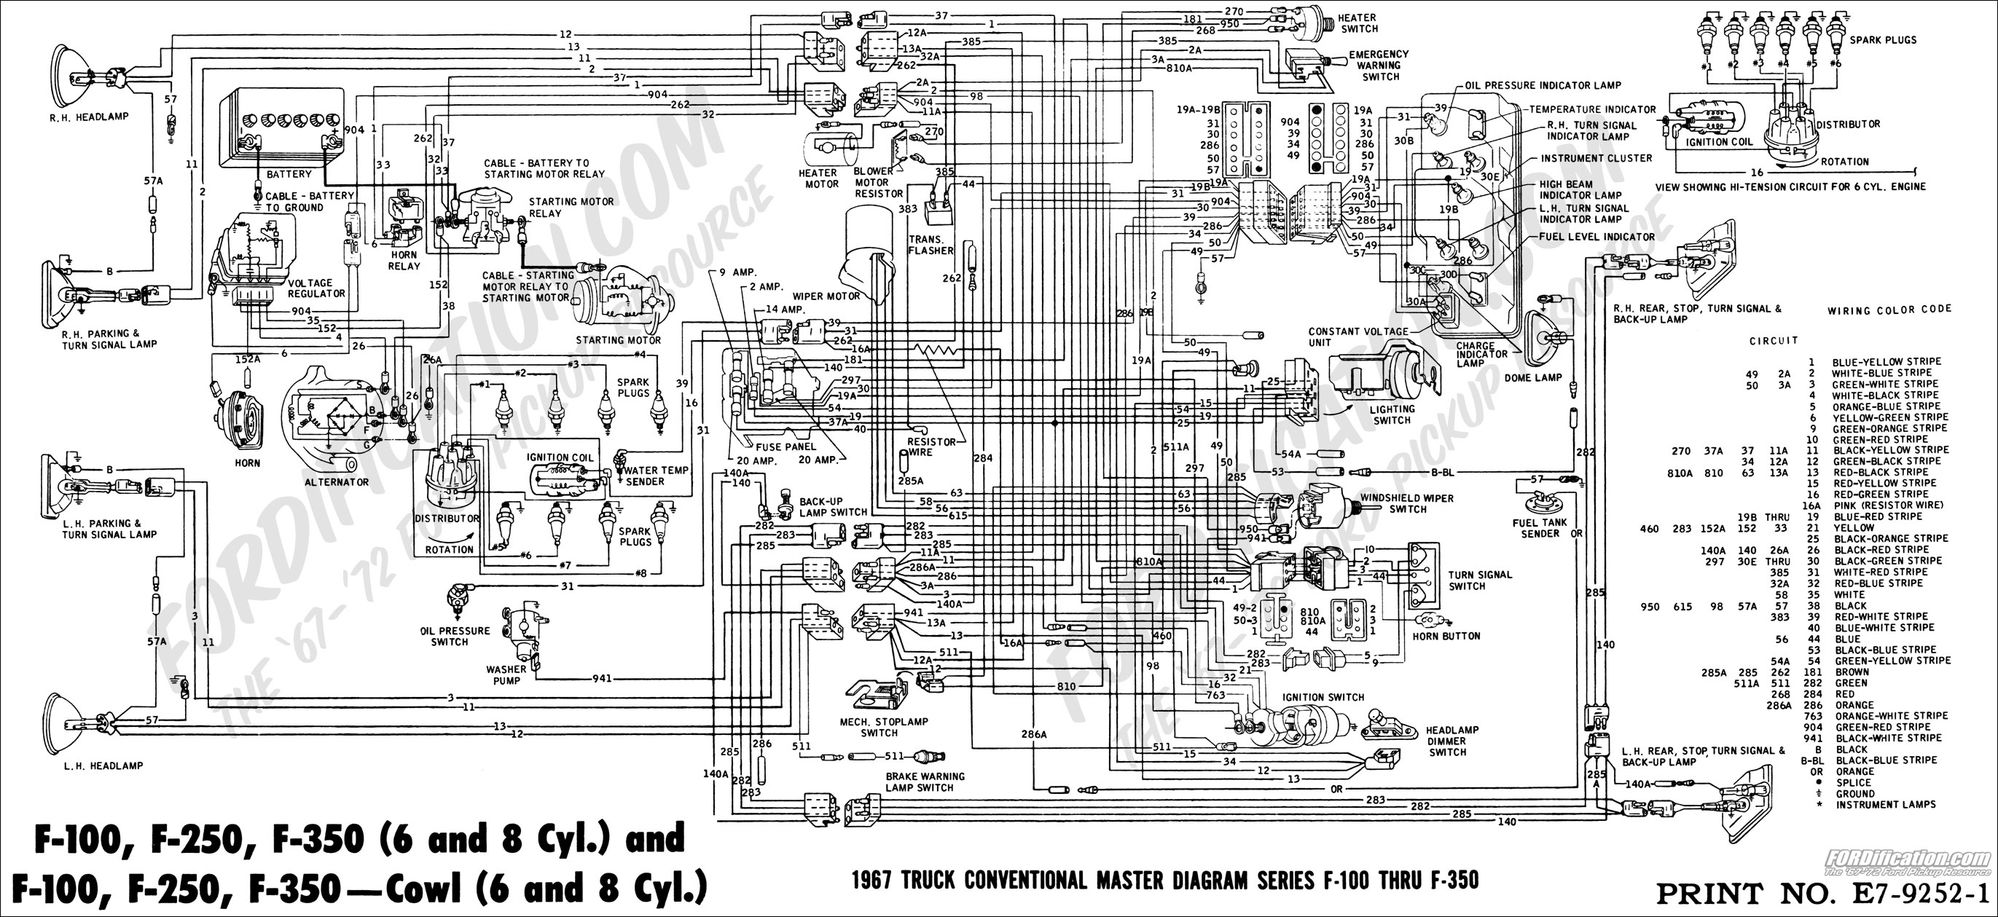 1970 ford f100 turn signal switch wiring diagram wiring diagram 1960 Ford F100 Wiring Diagram ford truck technical s and schematics section i 1960 ford f100 1960 ford f100 wiring diagram